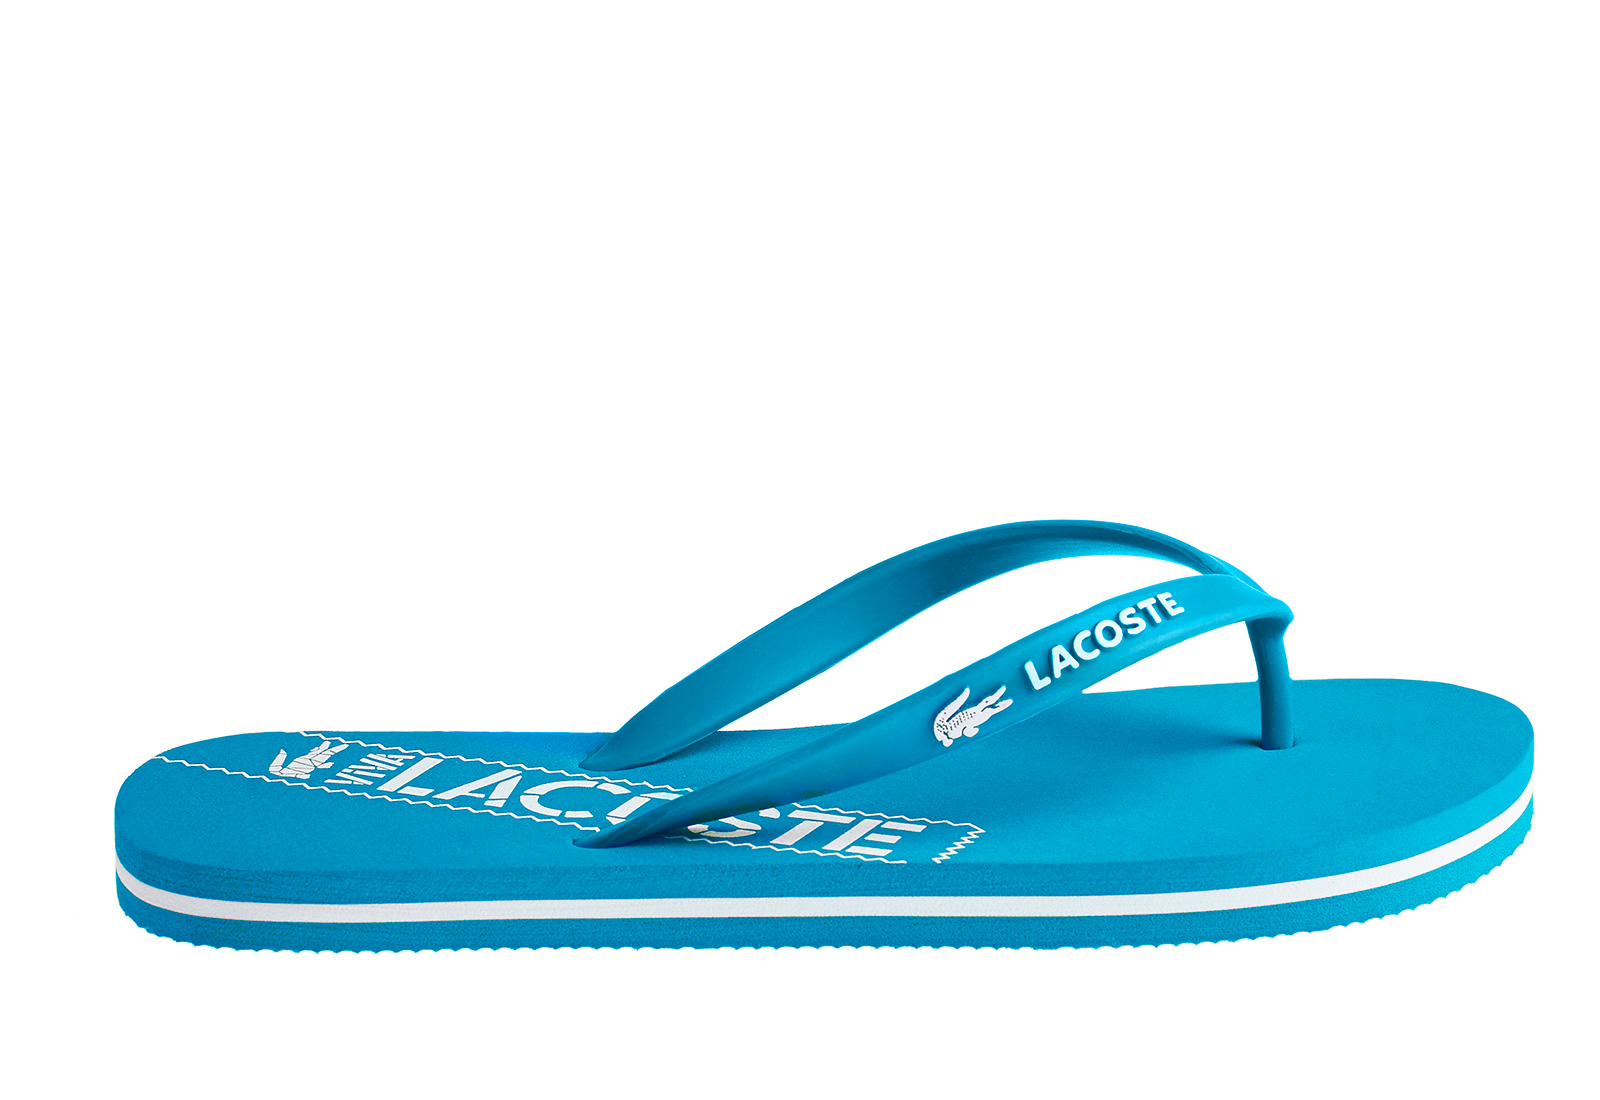 79497c4cd Lacoste Slippers - Ancelle Res - zx-spw100311c - Online shop for ...